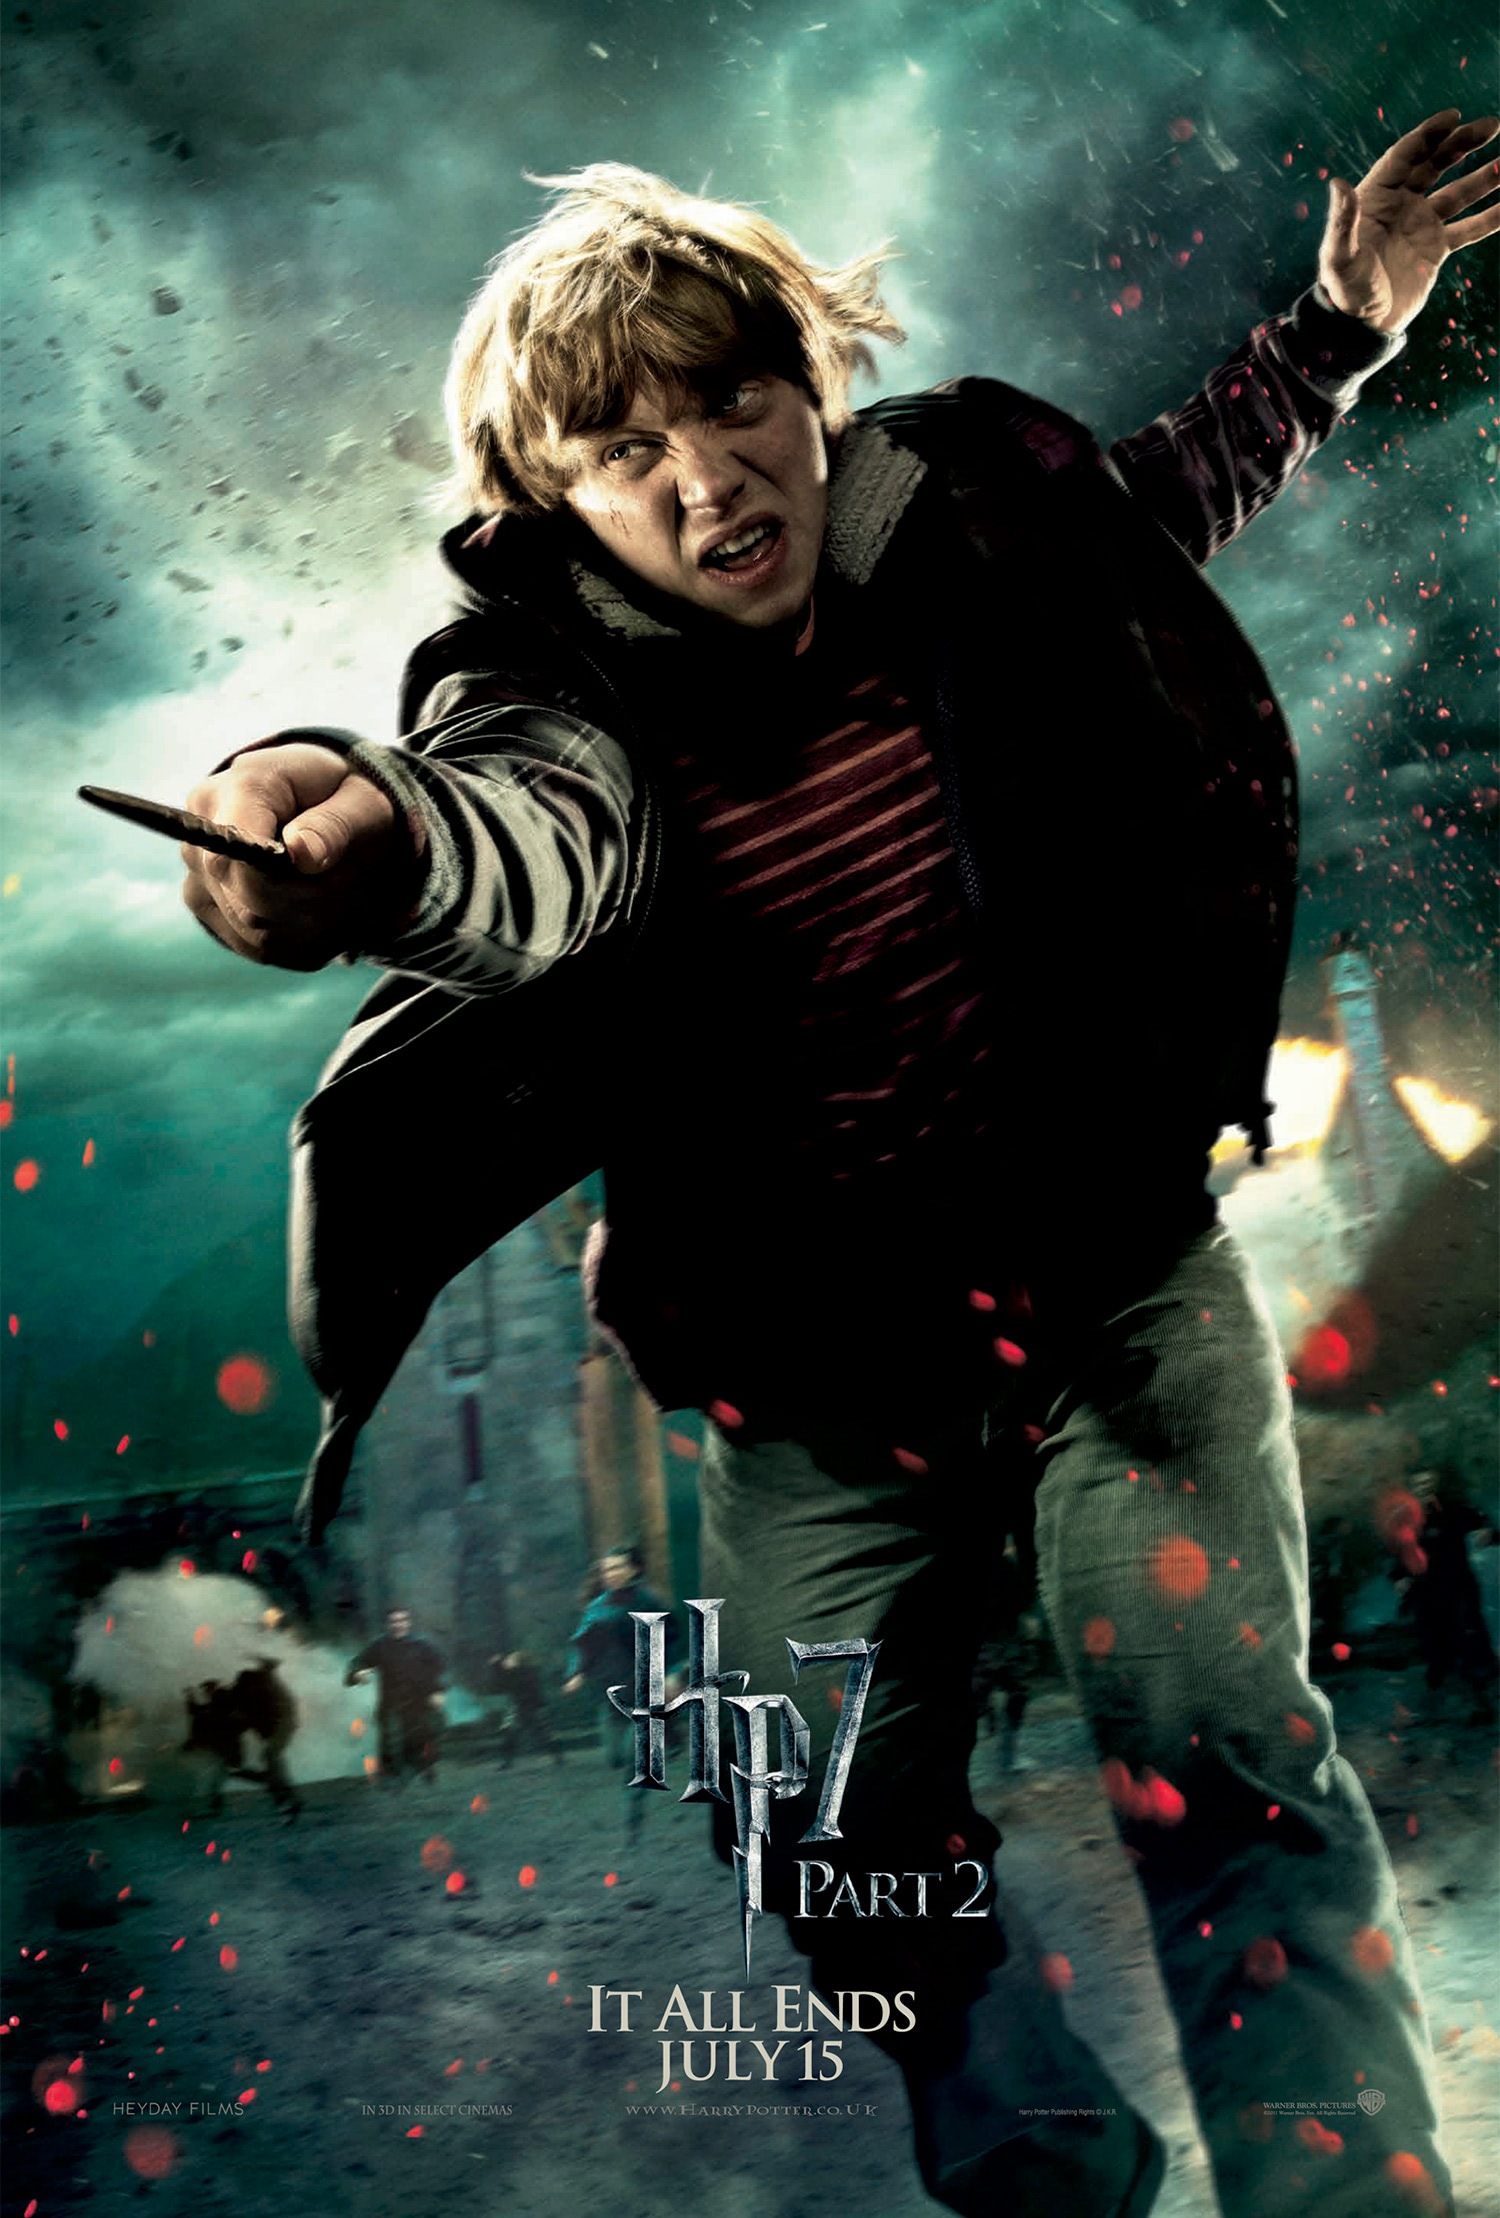 'Deathly Hallows: Part 2' Ron poster